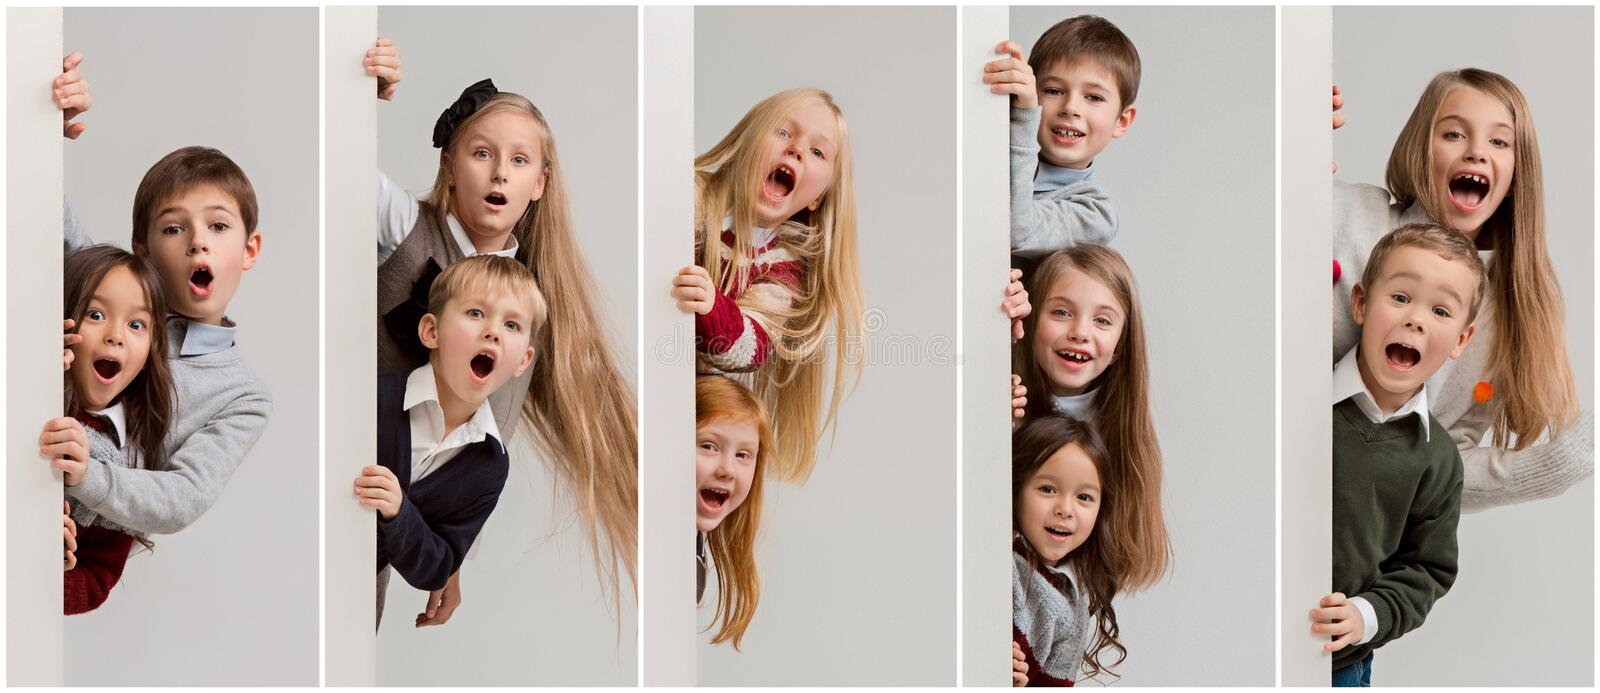 Banner with a surprised children peeking at the edge. With copyspace. The portrait of cute little kids boy and girls looking at camera against white studio wall royalty free stock photo